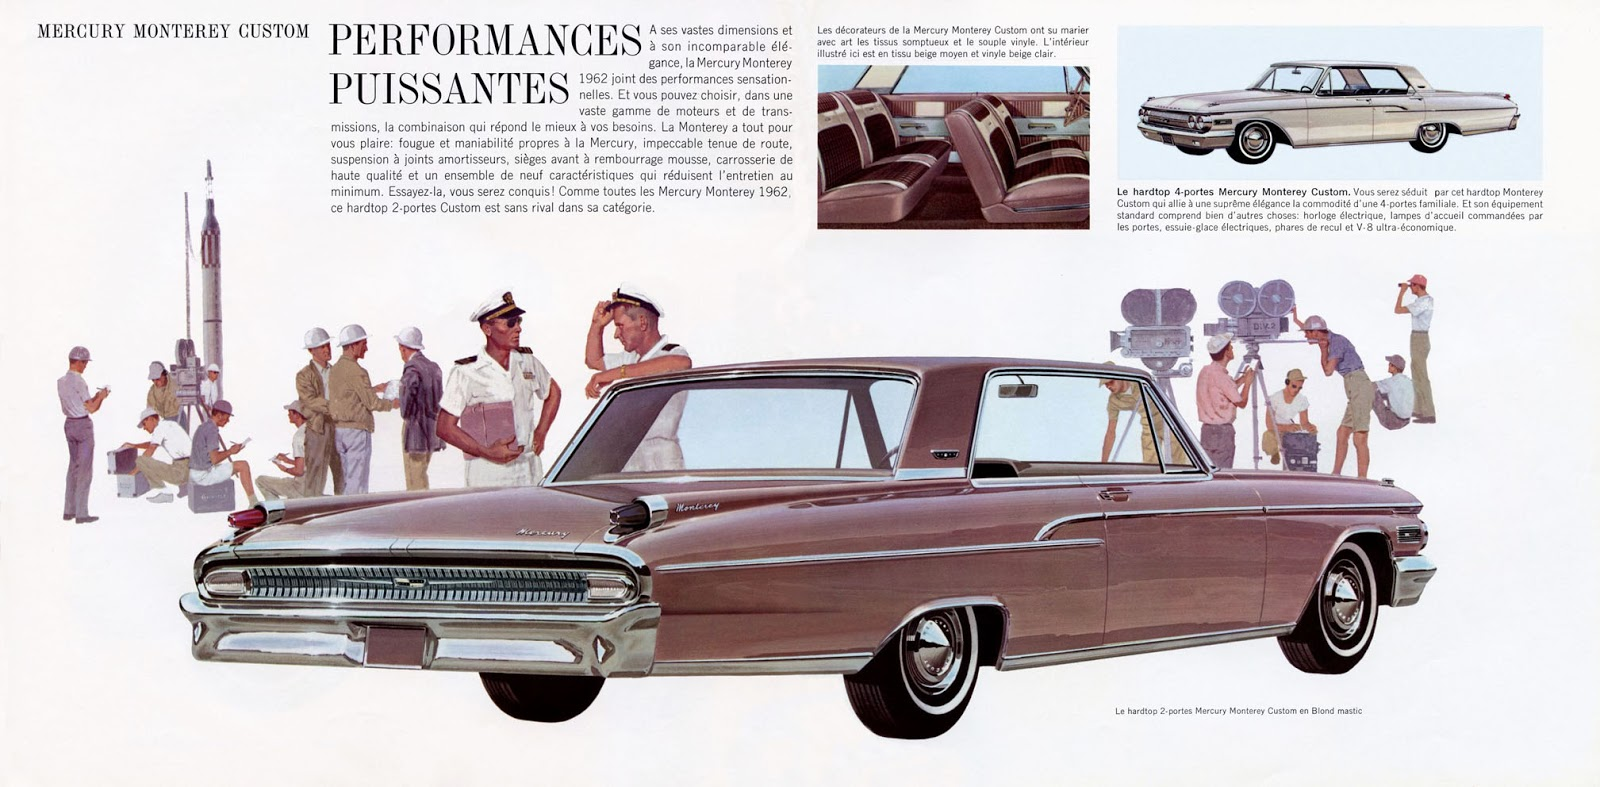 1962 Mercury Monterey - Vintage Cars Ads